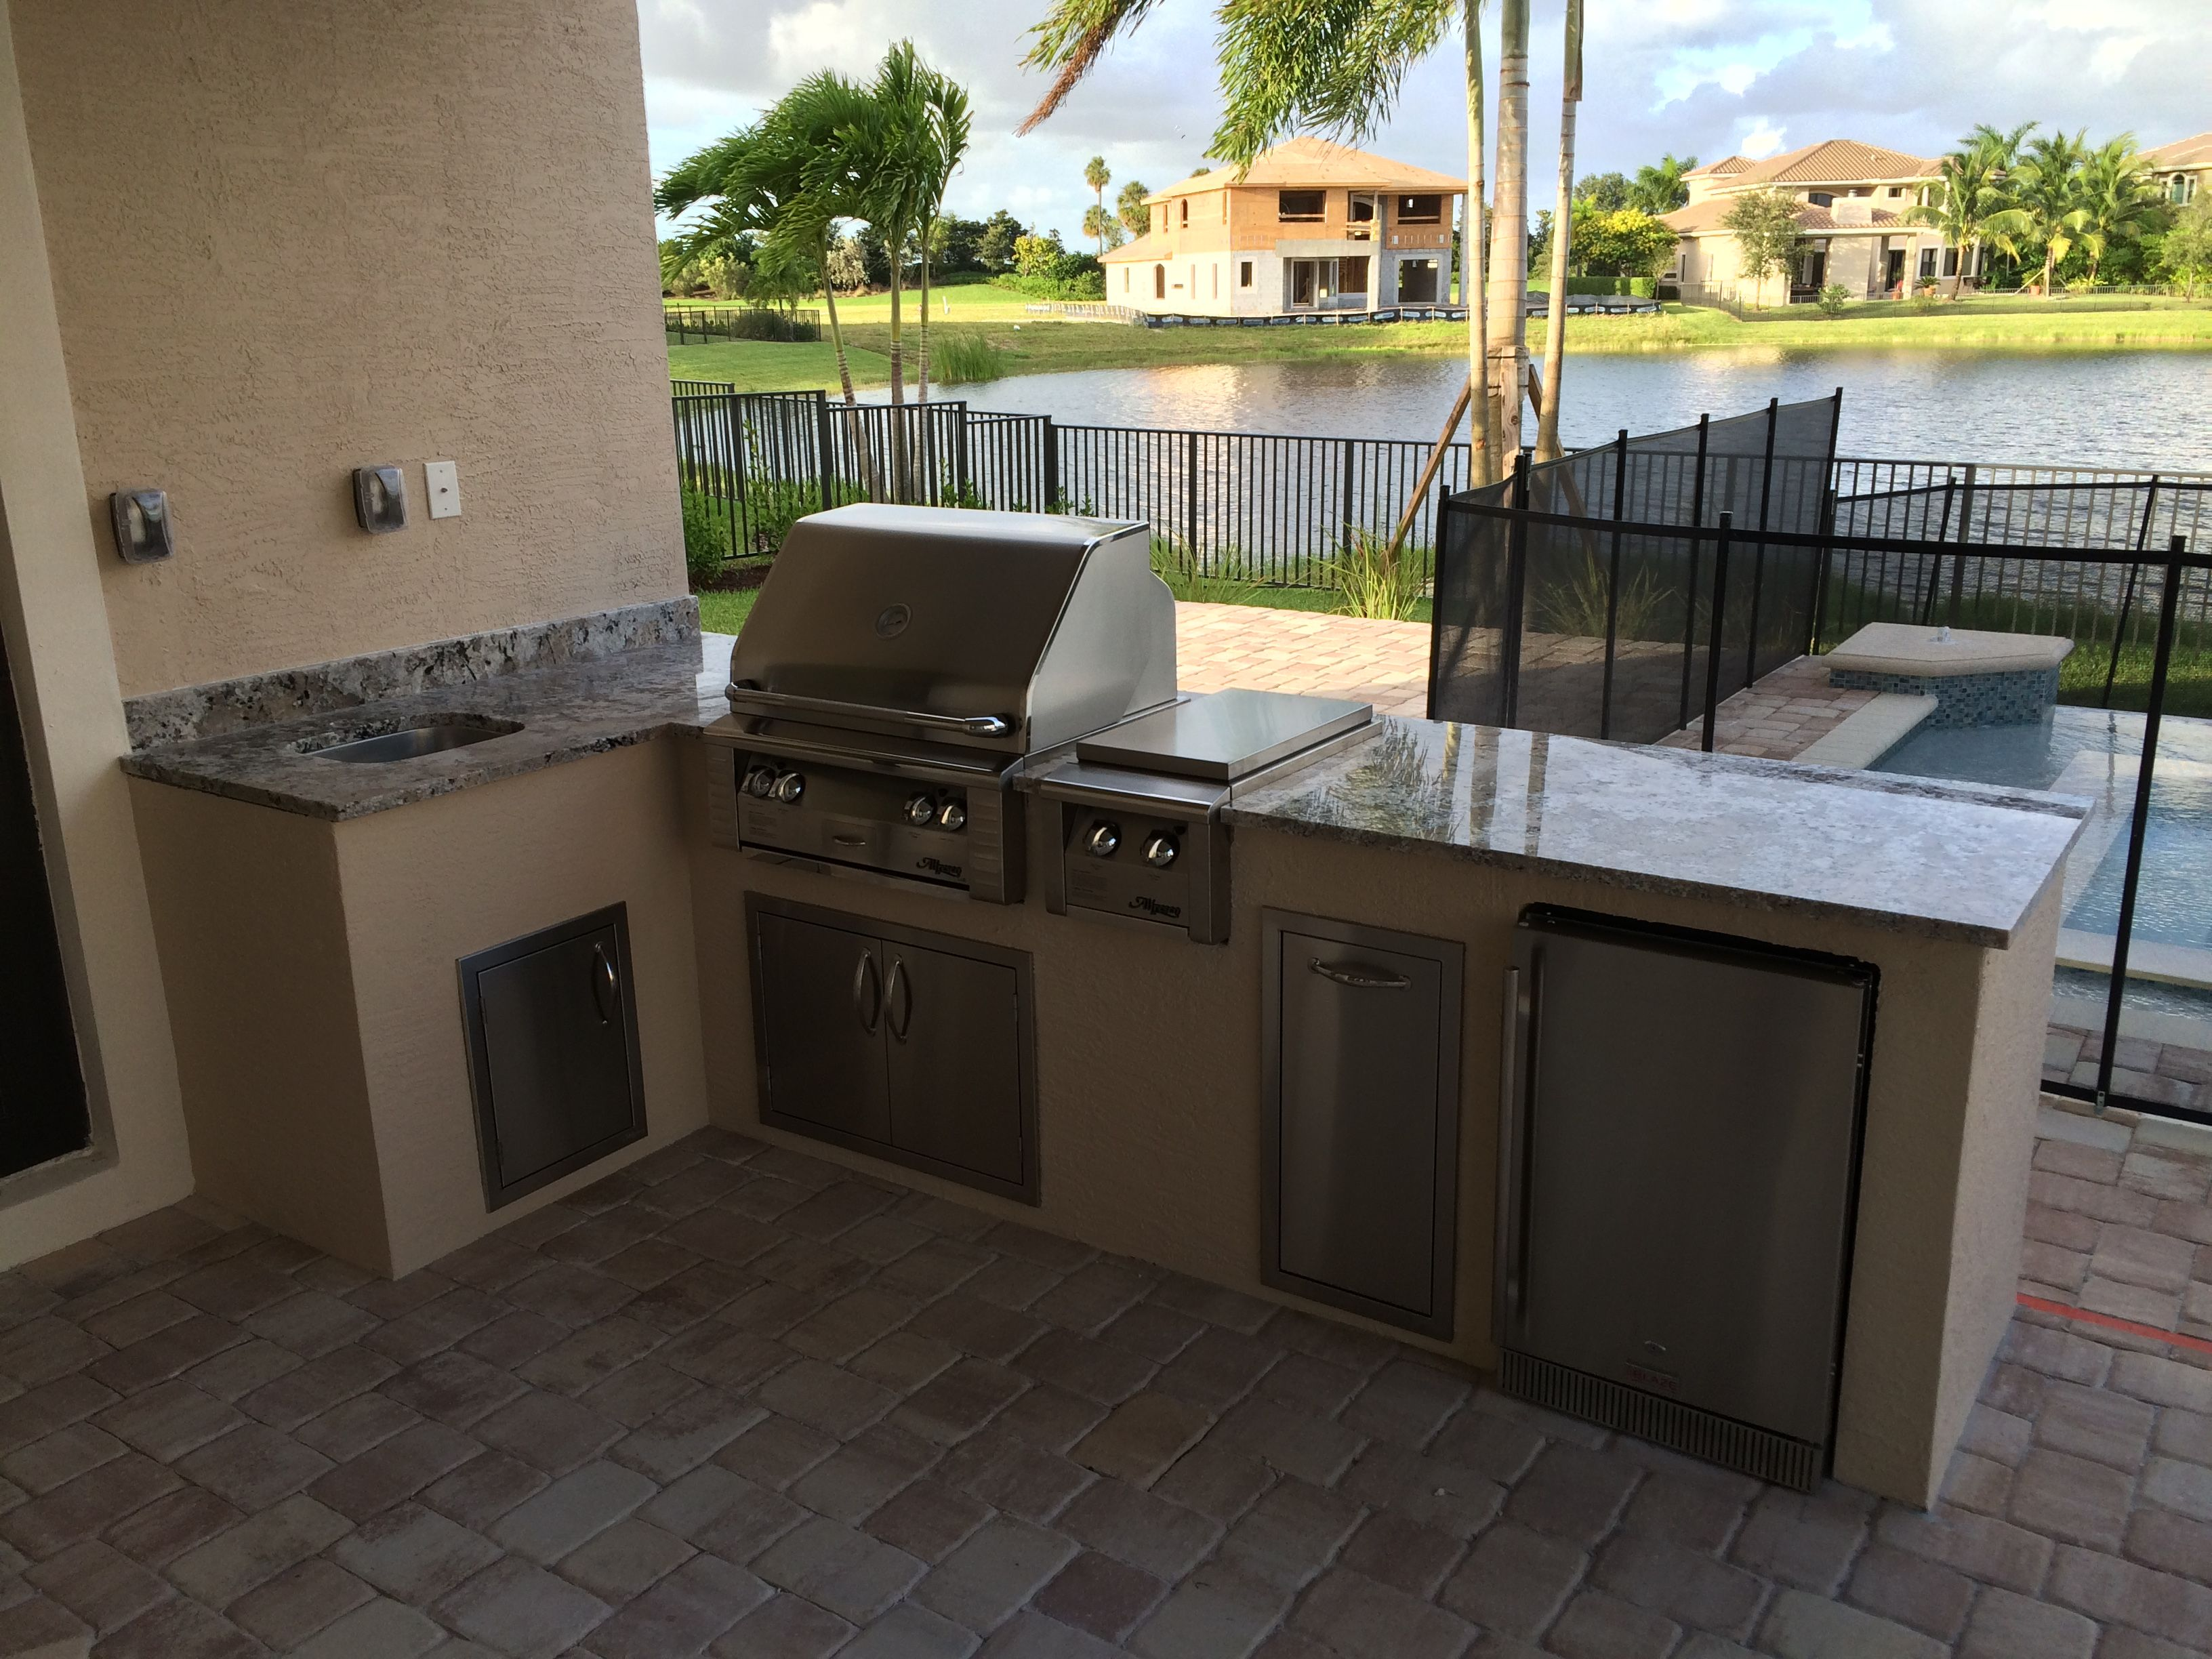 L Shaped Outdoor Kitchen Cabinets Louisville With Alfresco 30 Quot Grill And